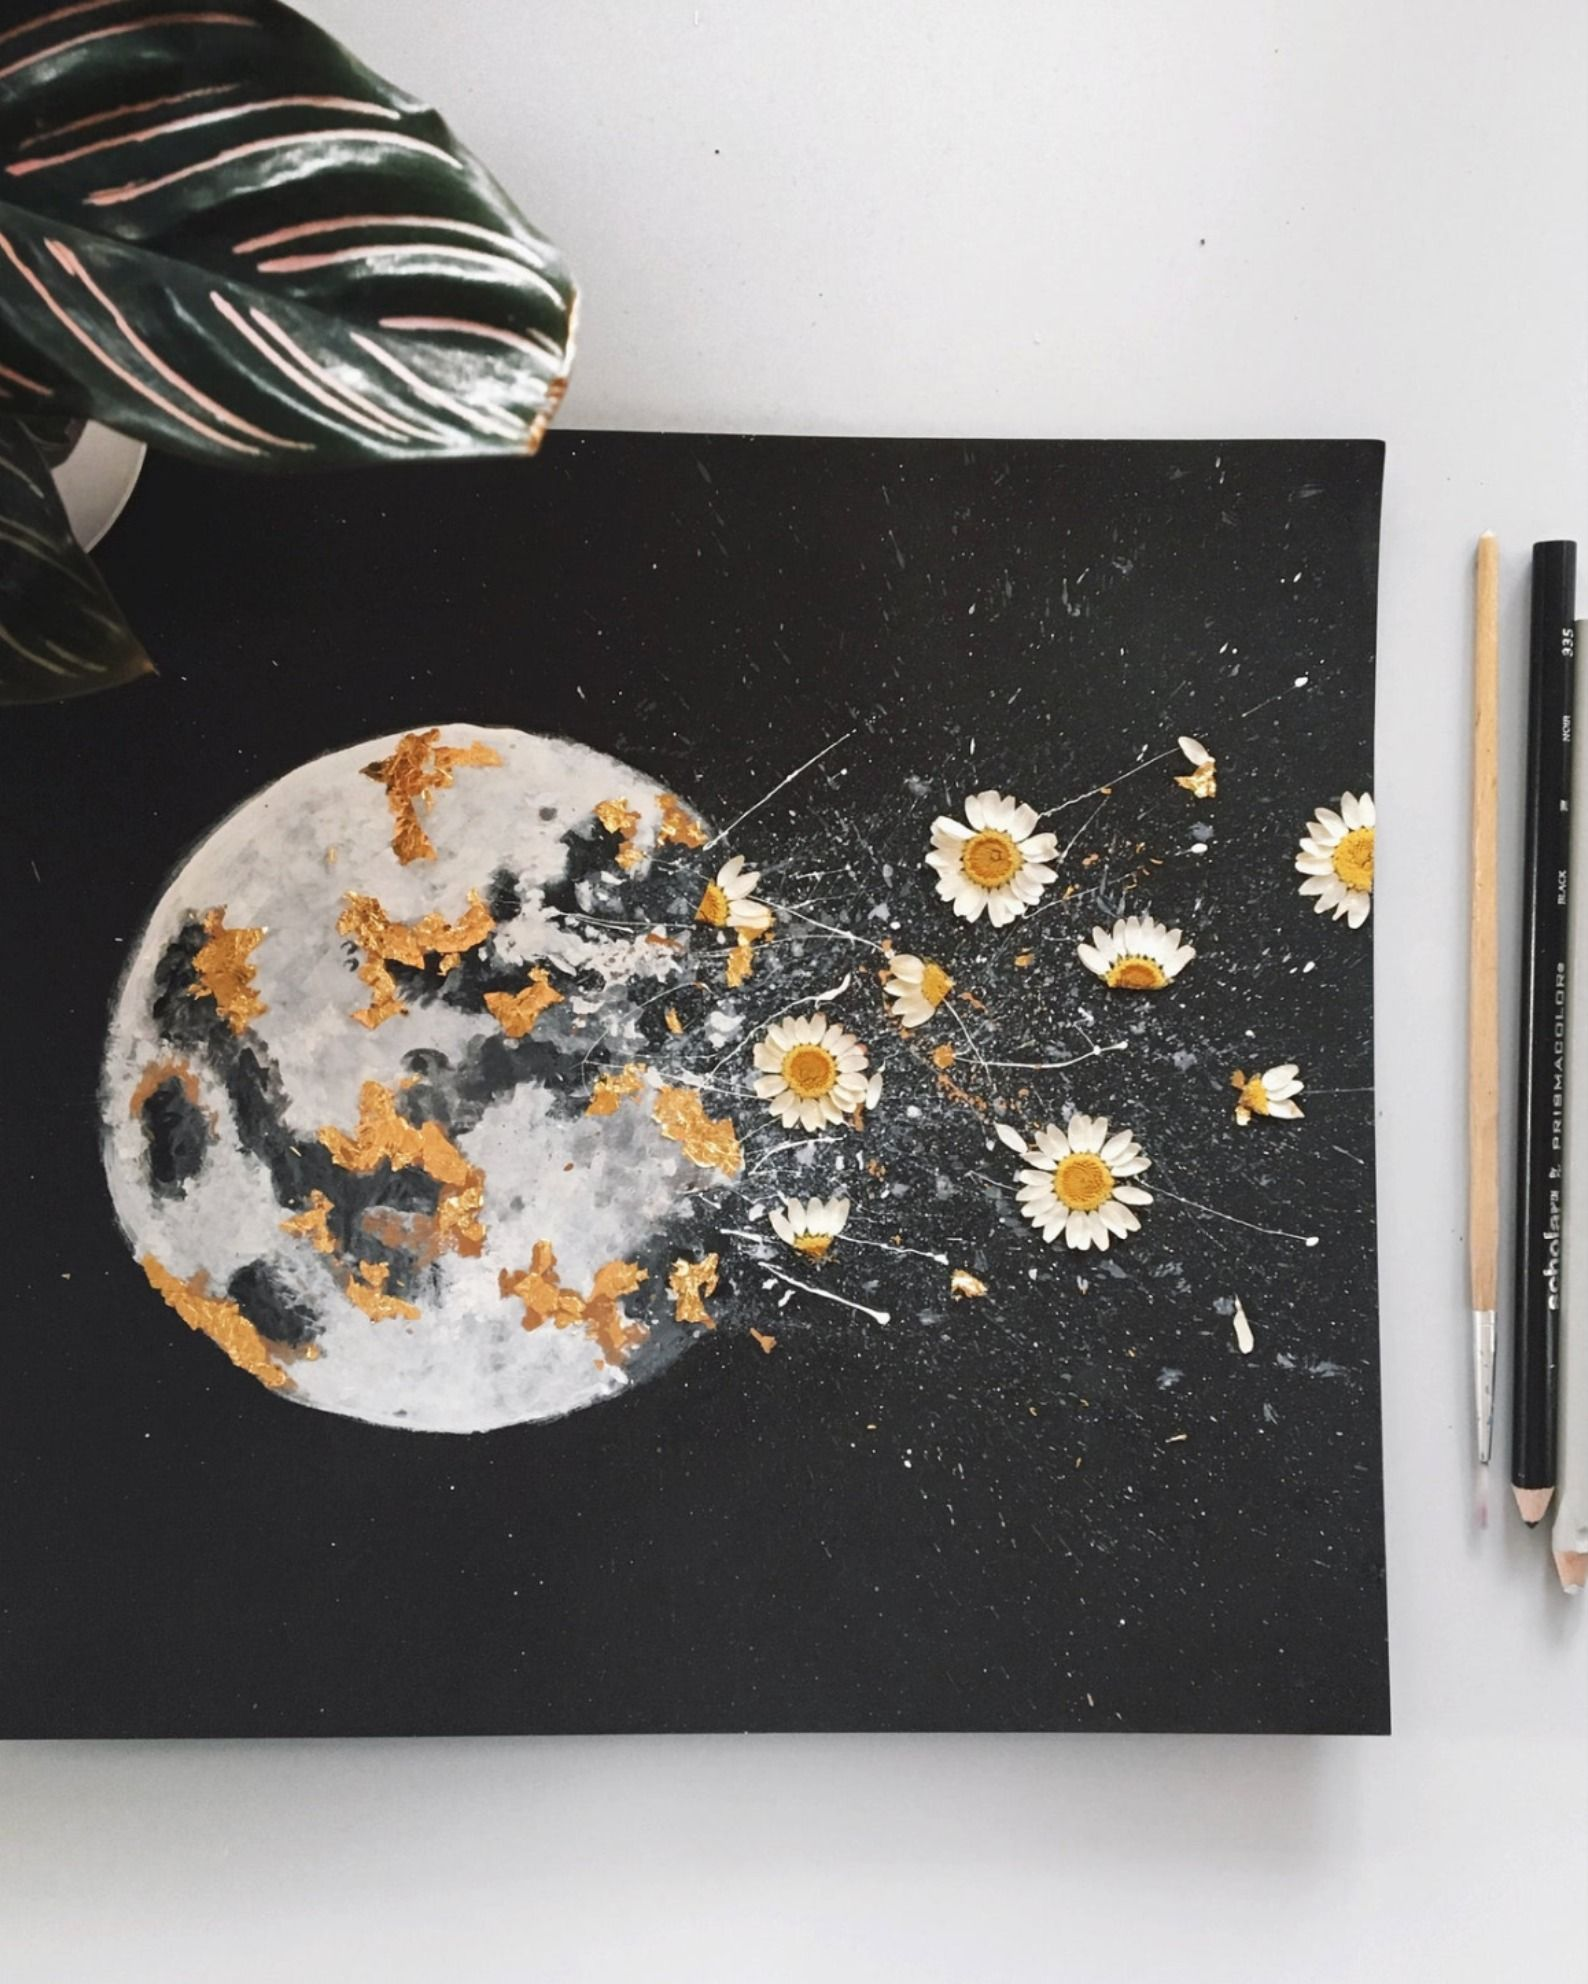 Dark Night Outburst Moon Watercolor W Gold Leaf And Dried Flowers Pressed Flower Art Watercolor Moon Flower Art Painting